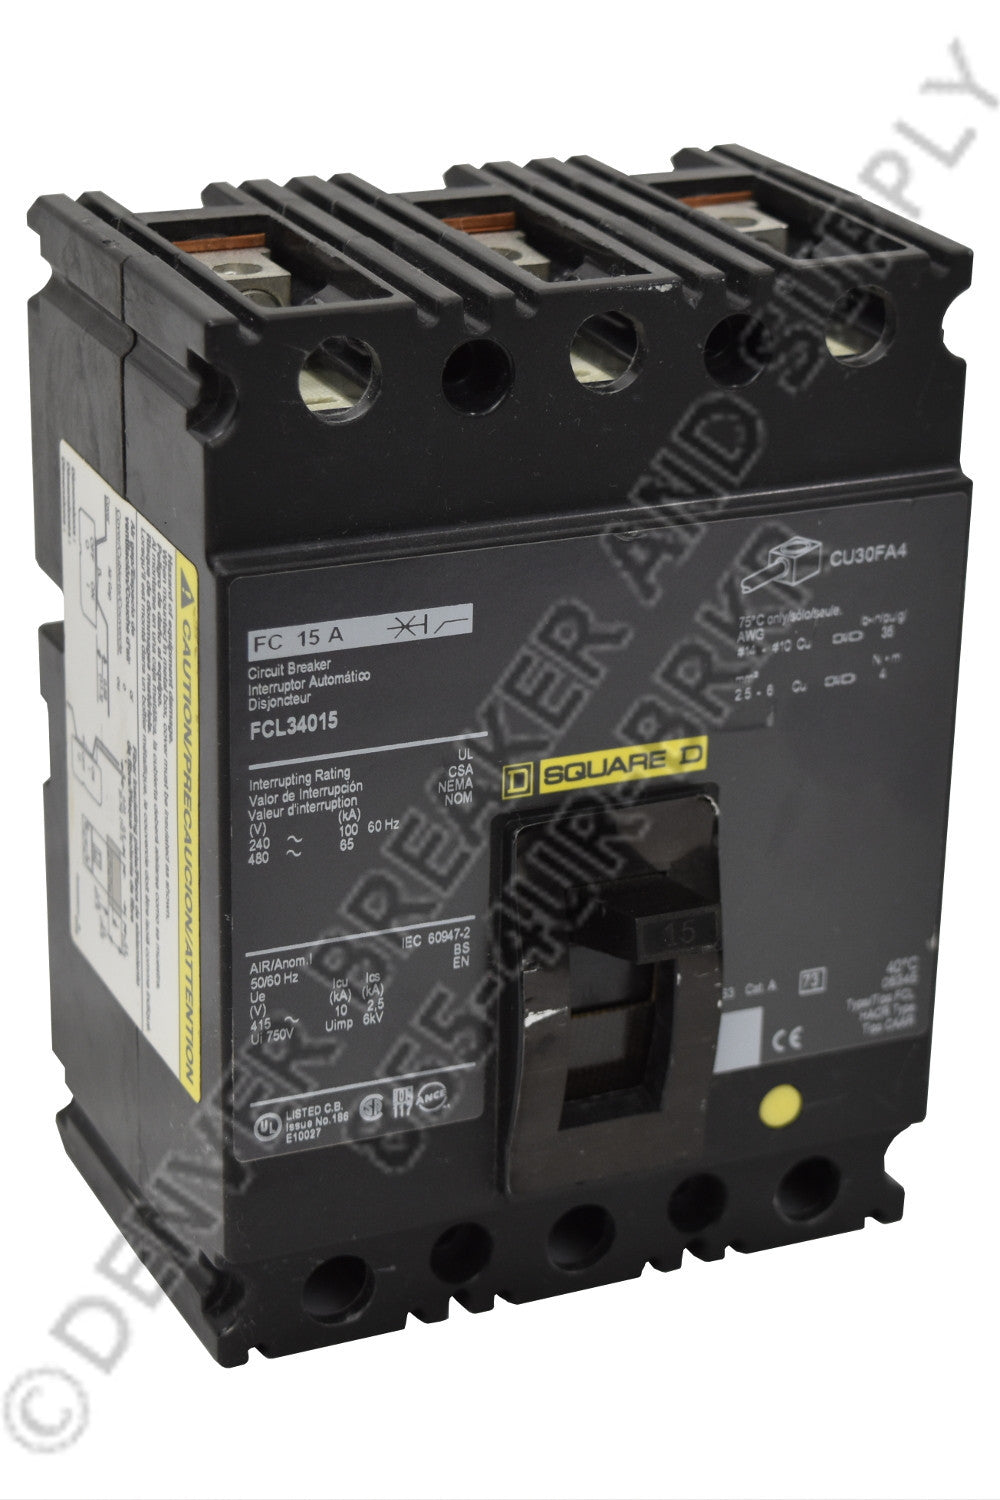 Square D FCP24025TF Circuit Breakers